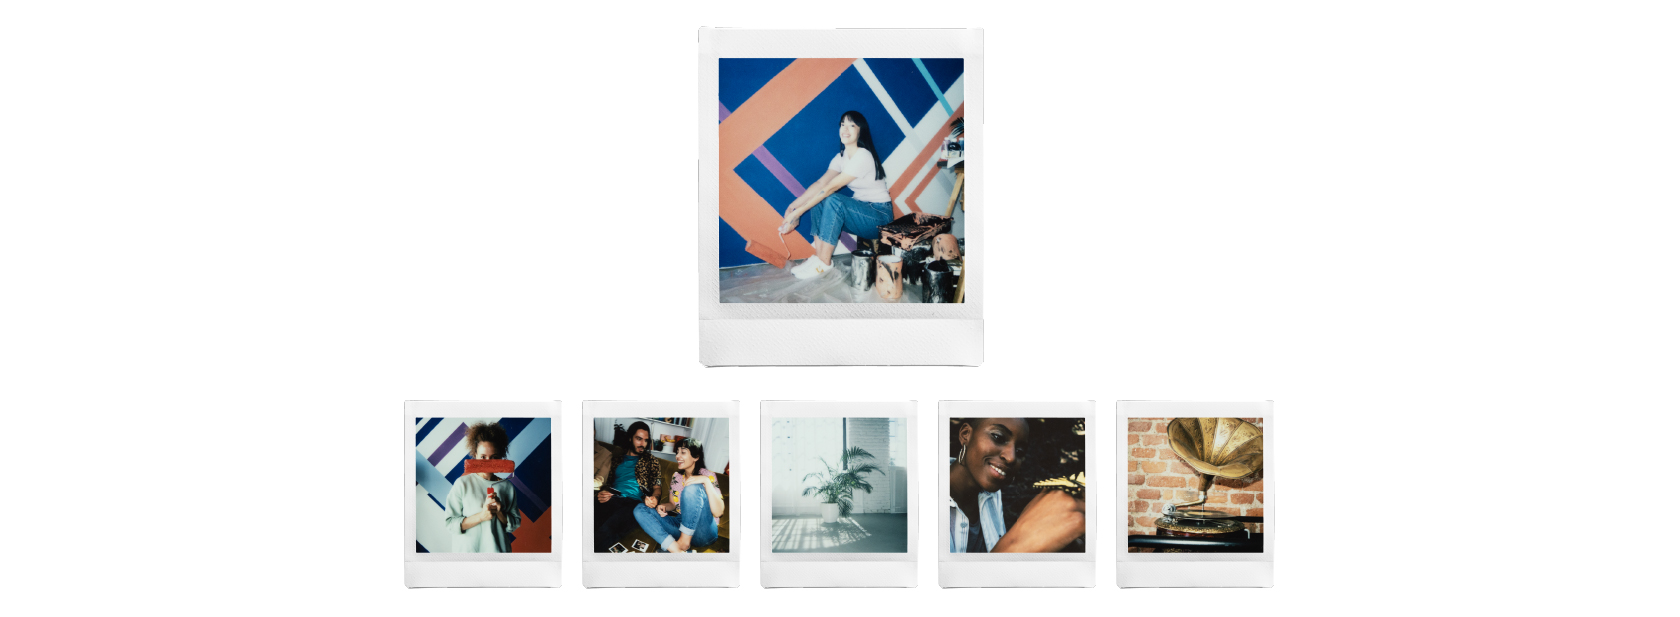 [photo] Row of INSTAX Square film photo prints - various images of young people painting, talking, and decorations